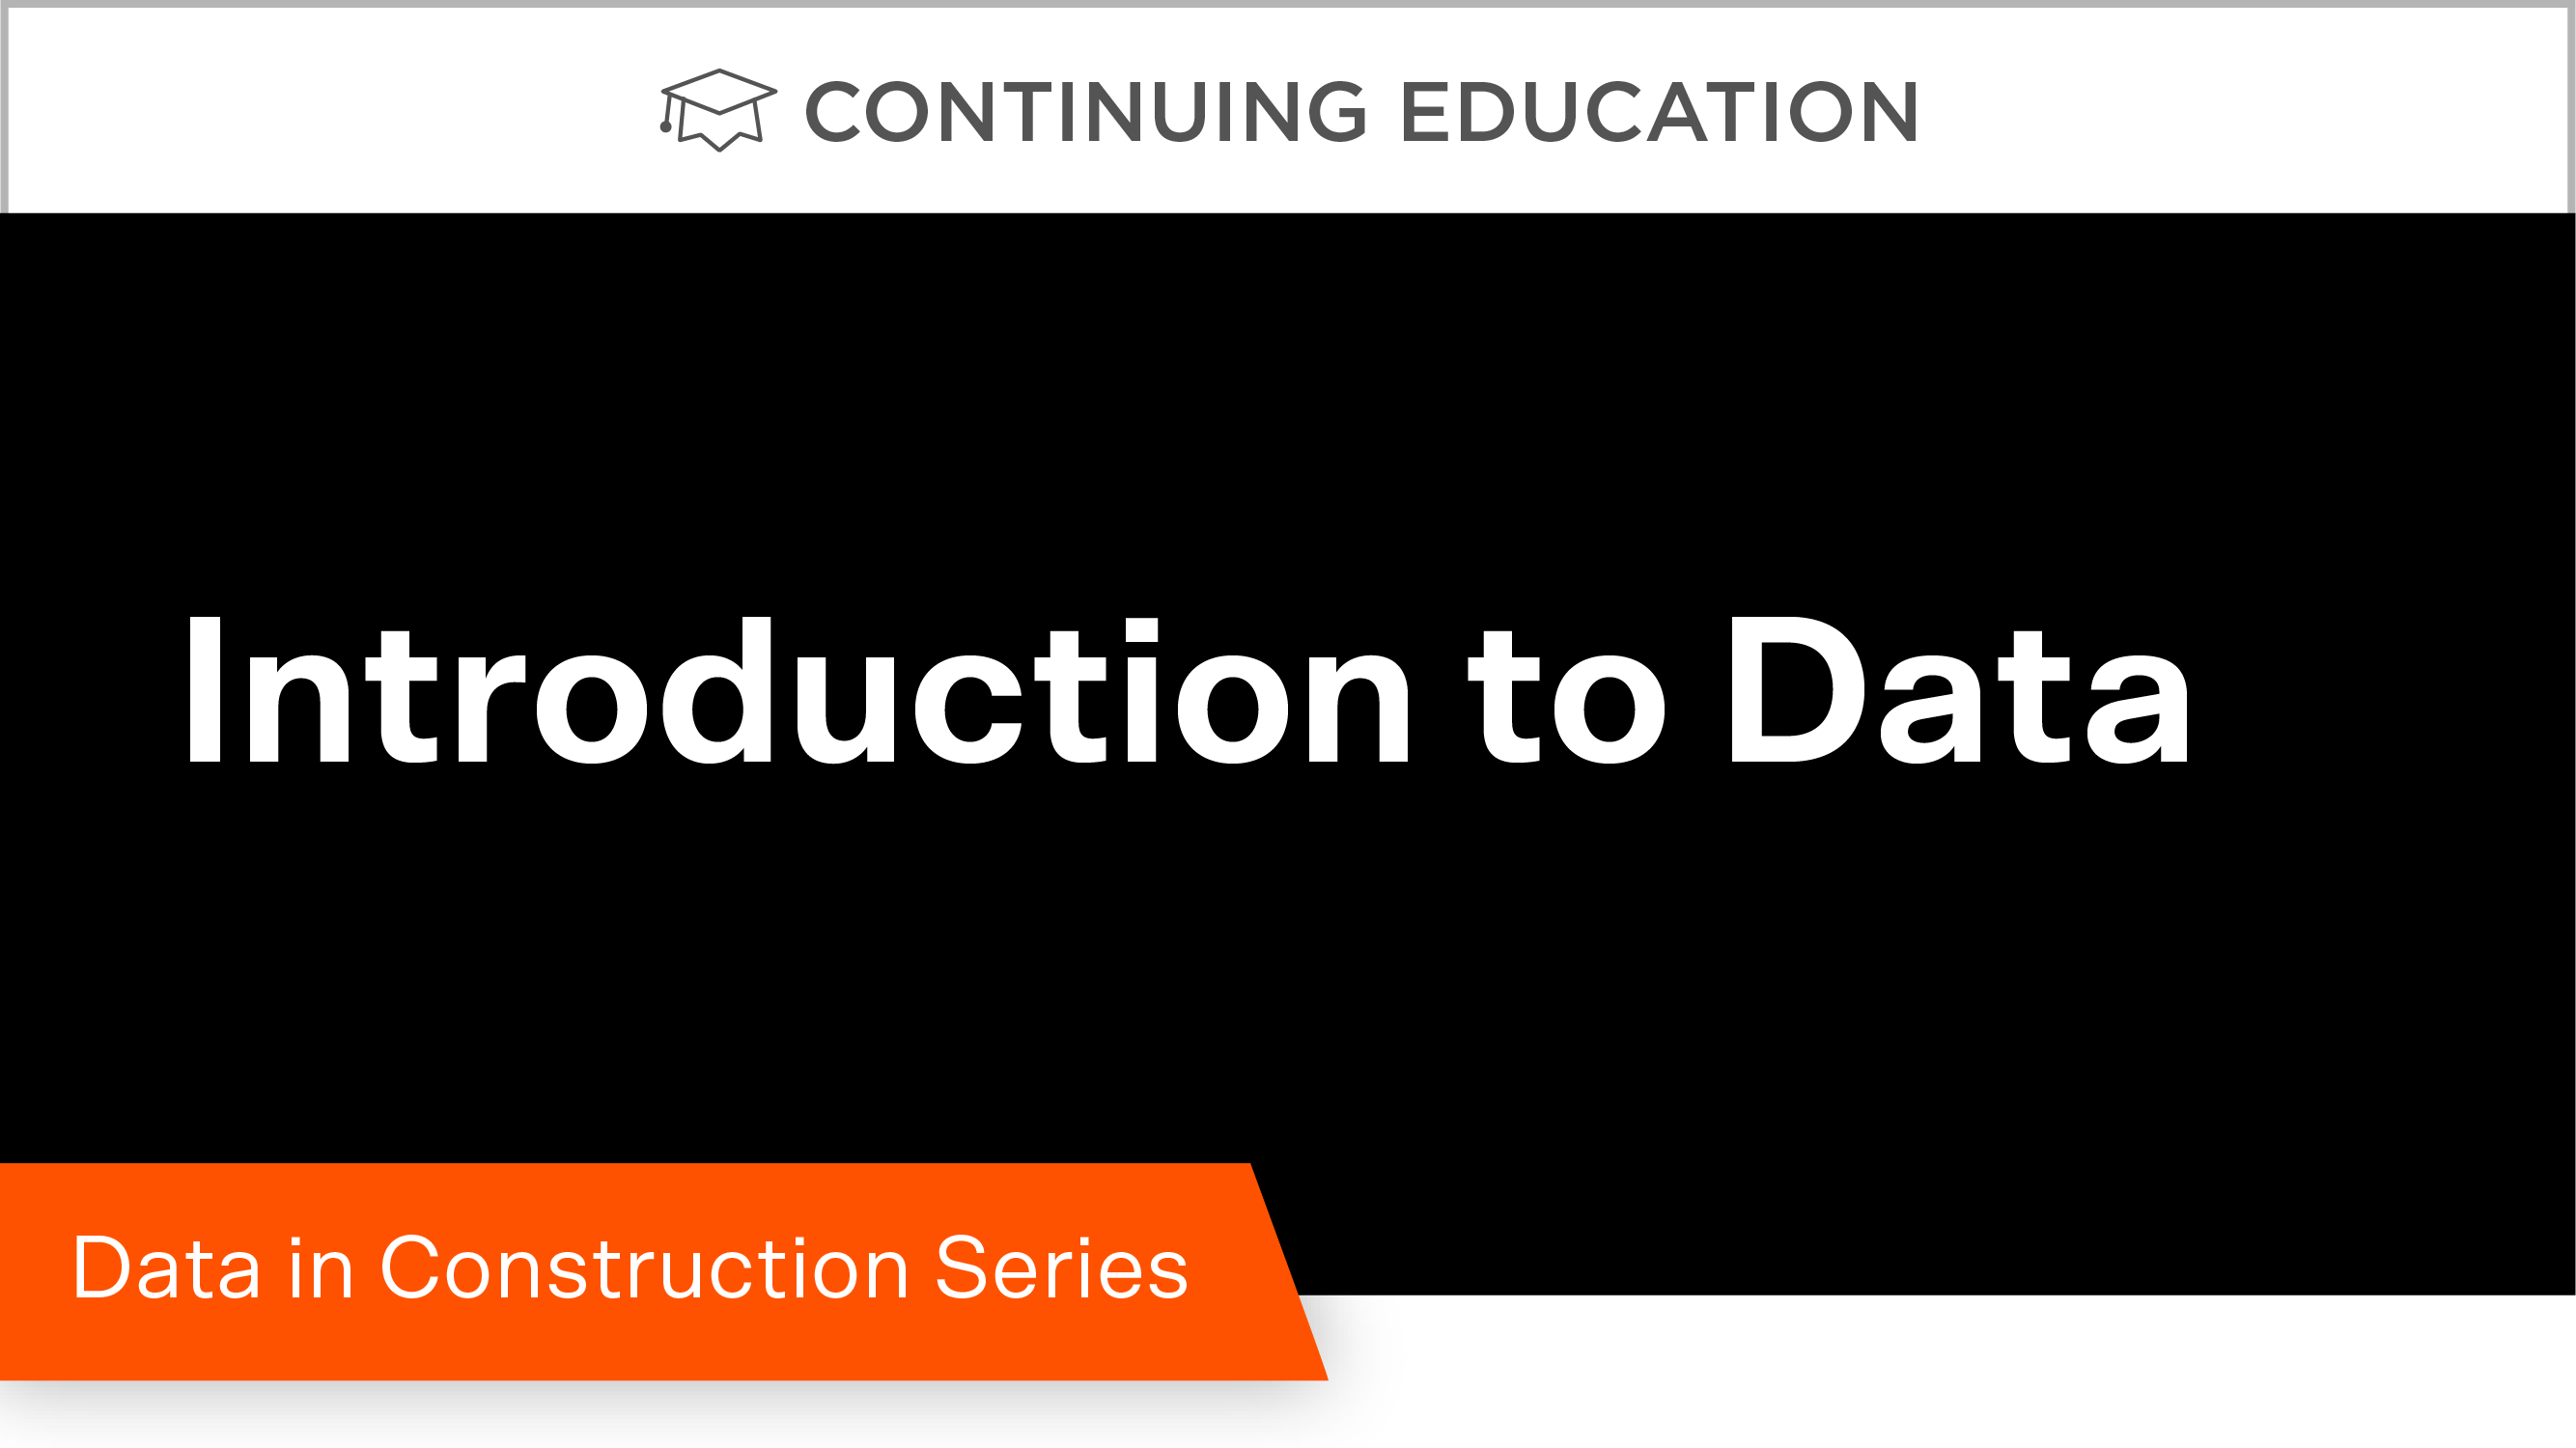 Data in Construction Part 1: Introduction to Data